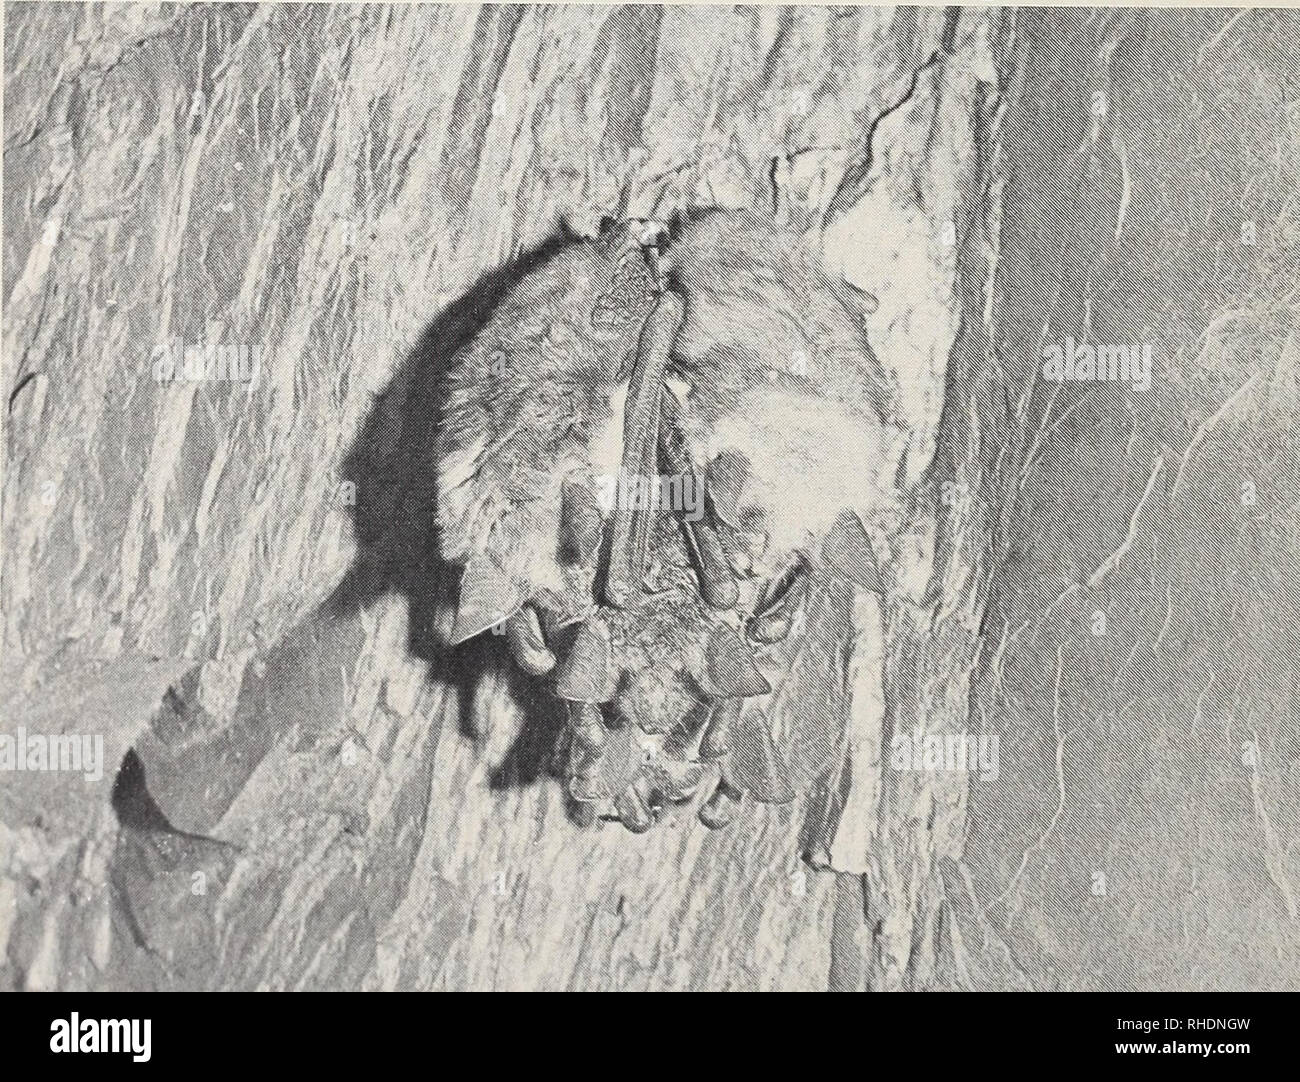 . Bonner zoologische Monographien. Zoology. Fig. 2: Common dormouse (Glis glis) in natural hibernation. Note the ball-like position.. Fig. 3: A group of hibernating bats (Myotis myotis) in a cave.. Please note that these images are extracted from scanned page images that may have been digitally enhanced for readability - coloration and appearance of these illustrations may not perfectly resemble the original work.. Bonn, Zoologisches Forschungsinstitut und Museum Alexander Koenig - Stock Image